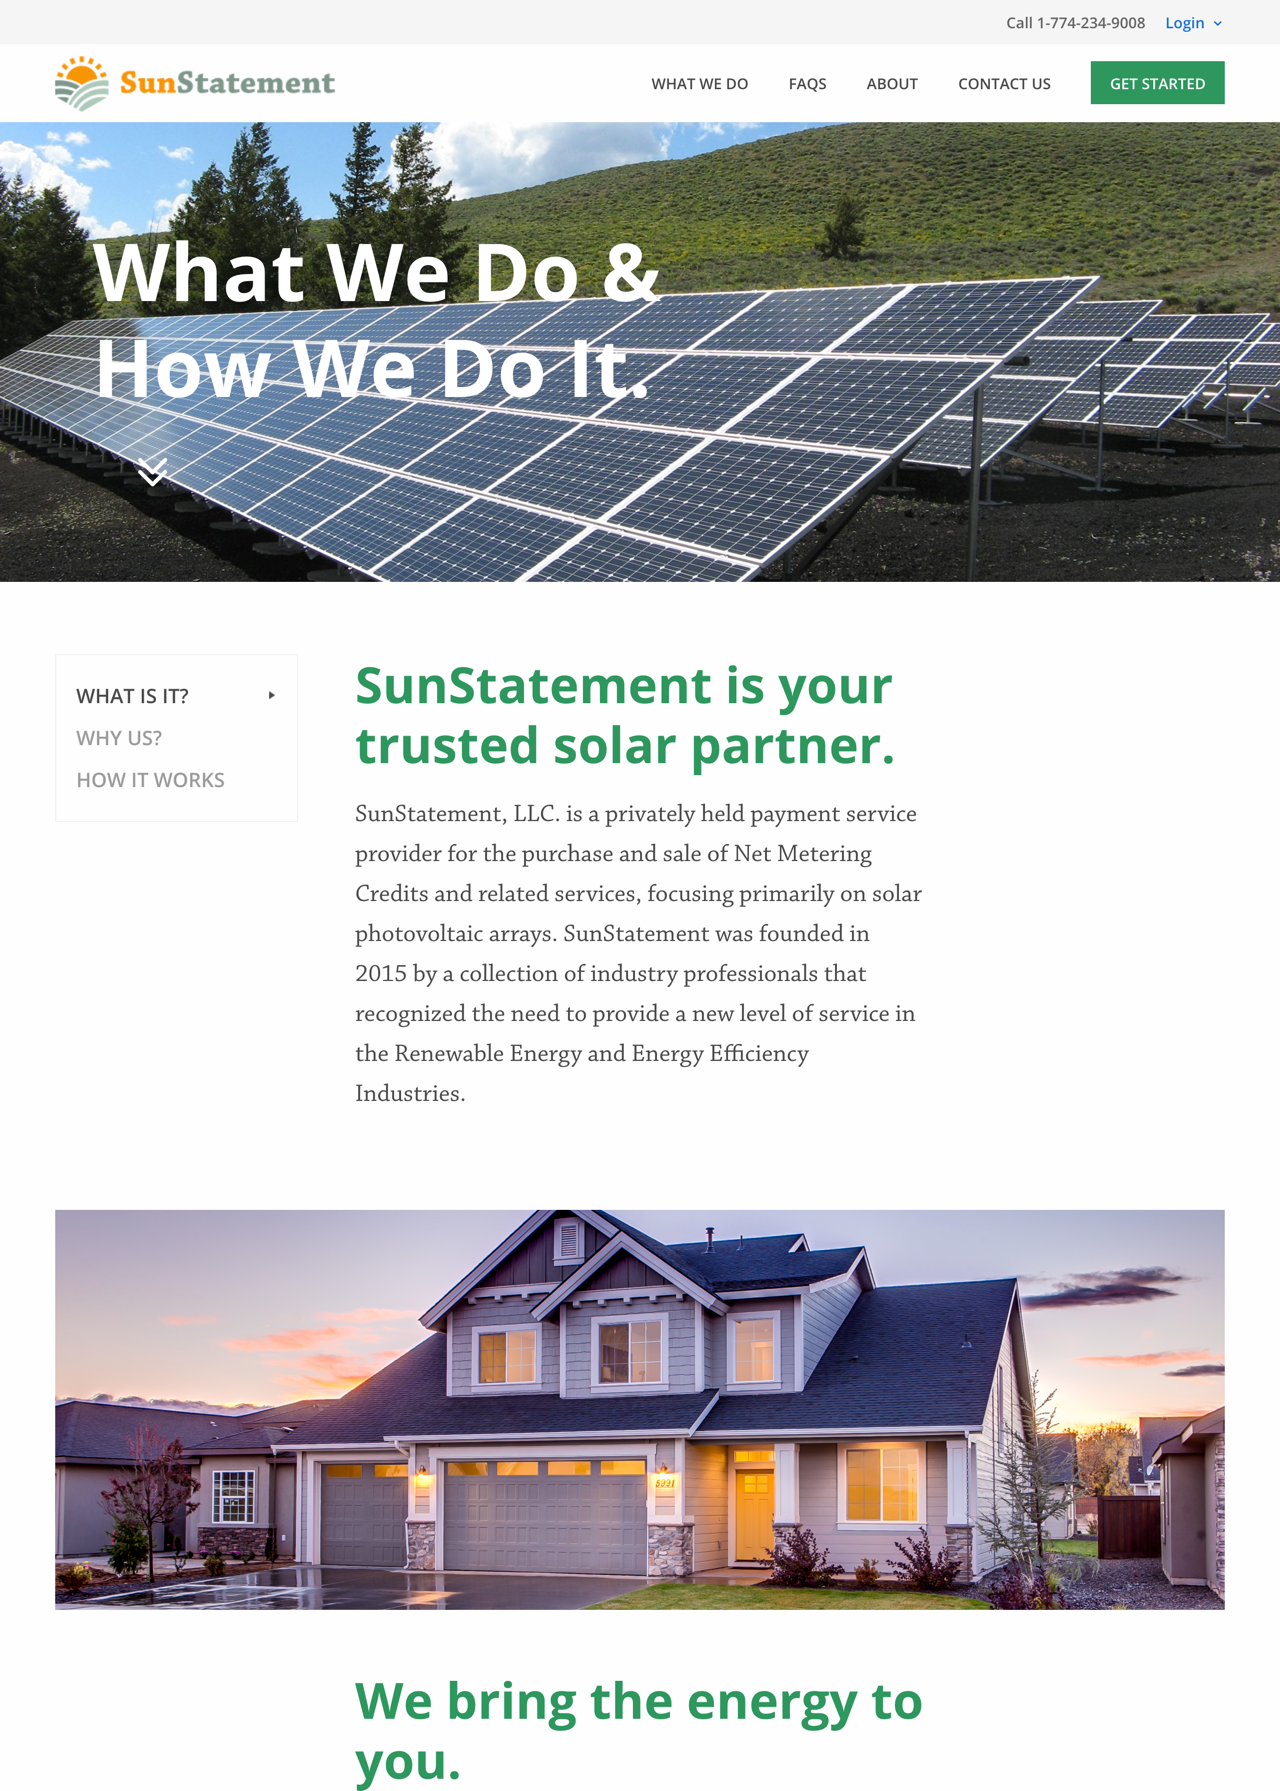 Sun Statement What We Do Page